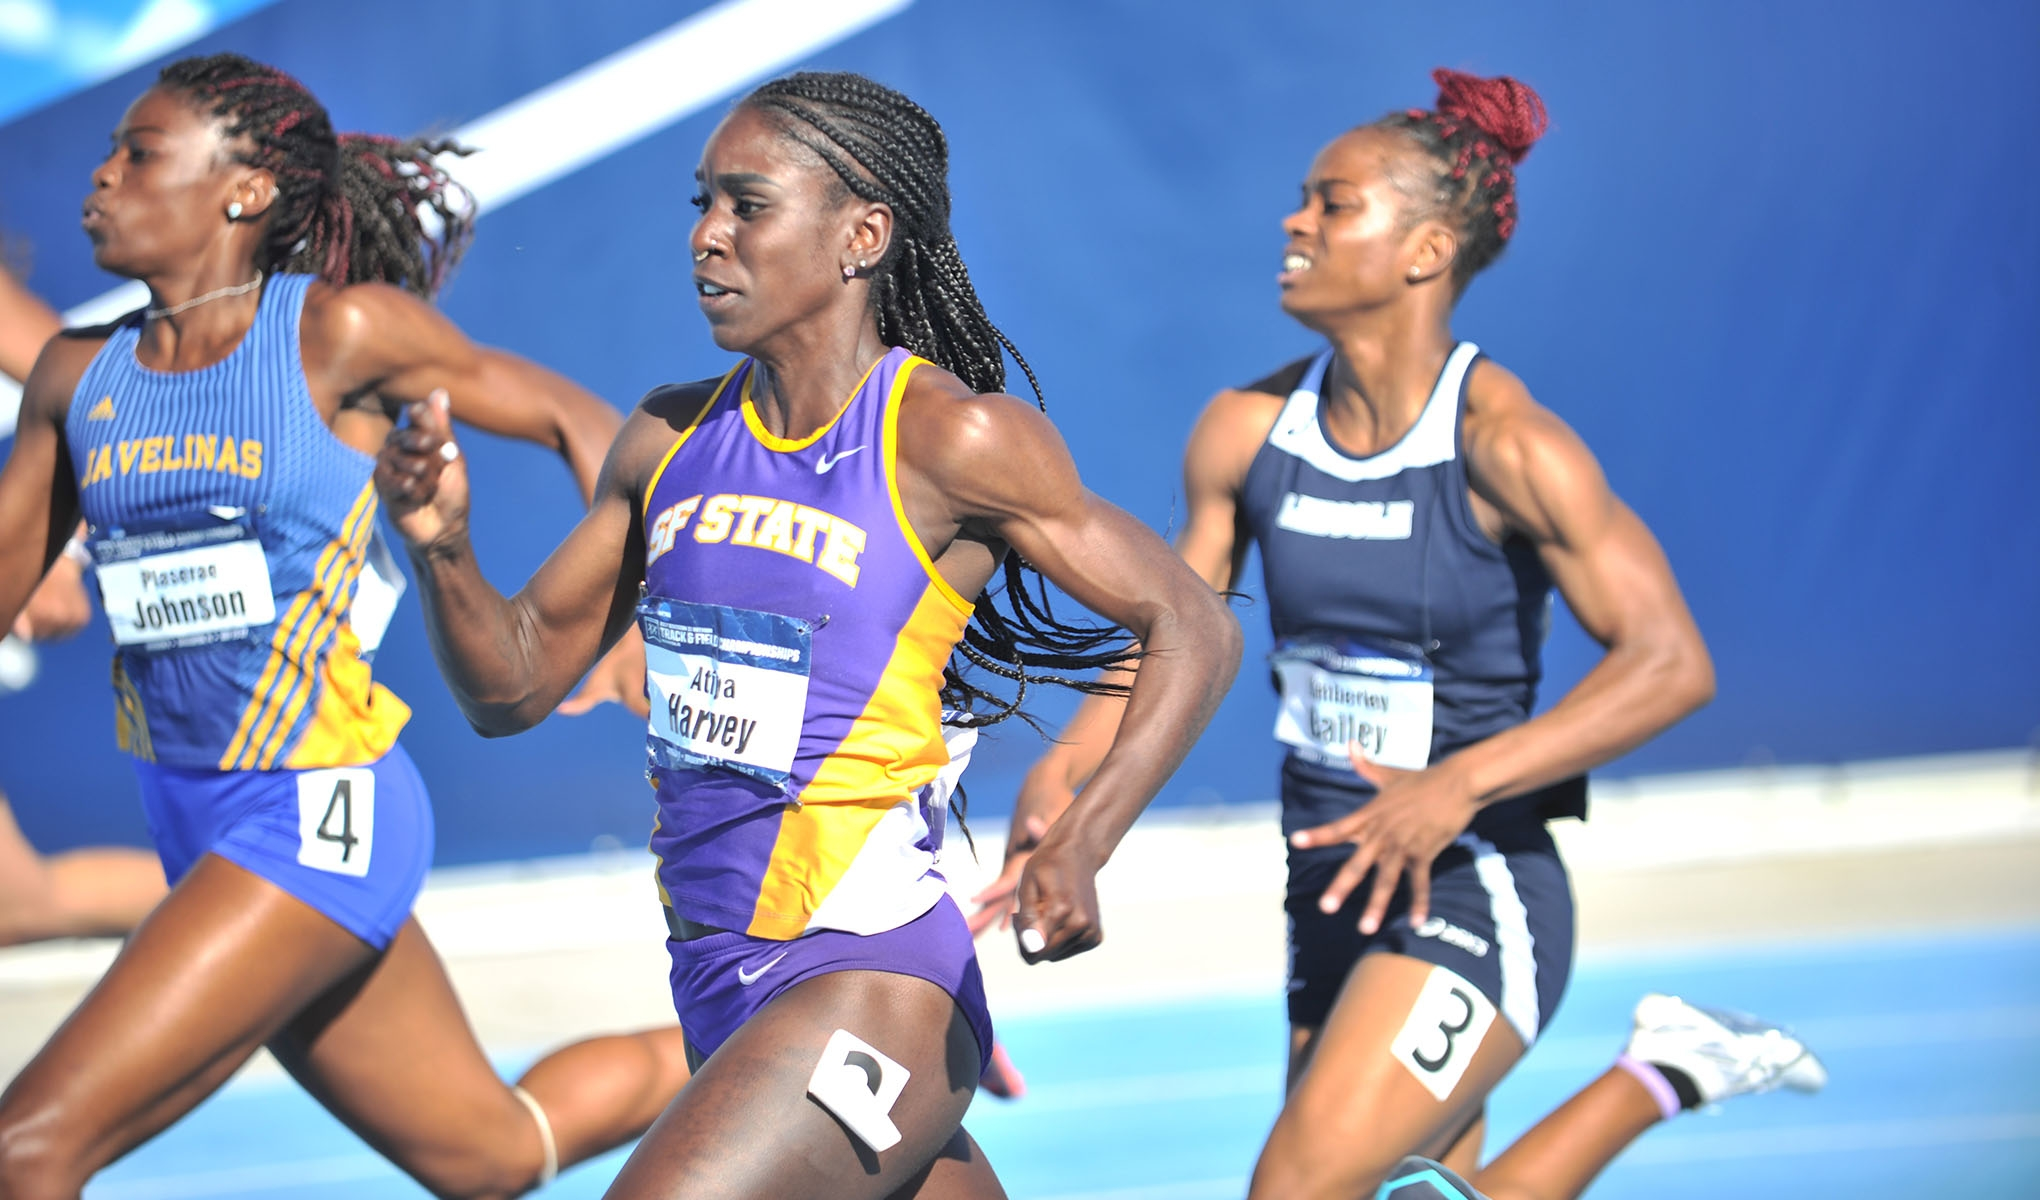 Atiya Harvey runs next to two competitors during her leg of the women's 4x400 relay competition.